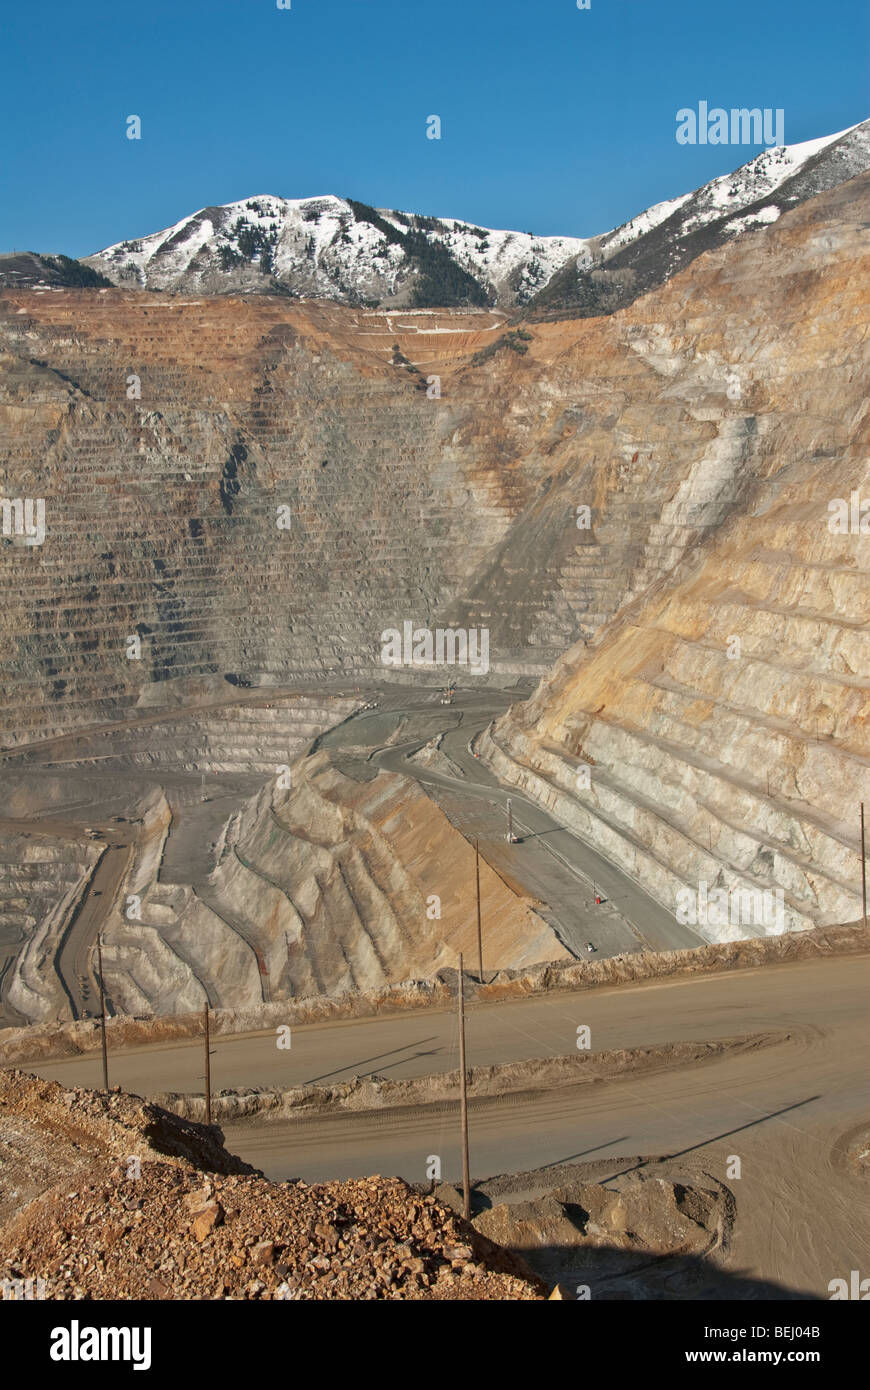 Utah Kennecott Utah Copper Bingham Canyon Mine world's largest man-made excavation visitor center overlook Stock Photo